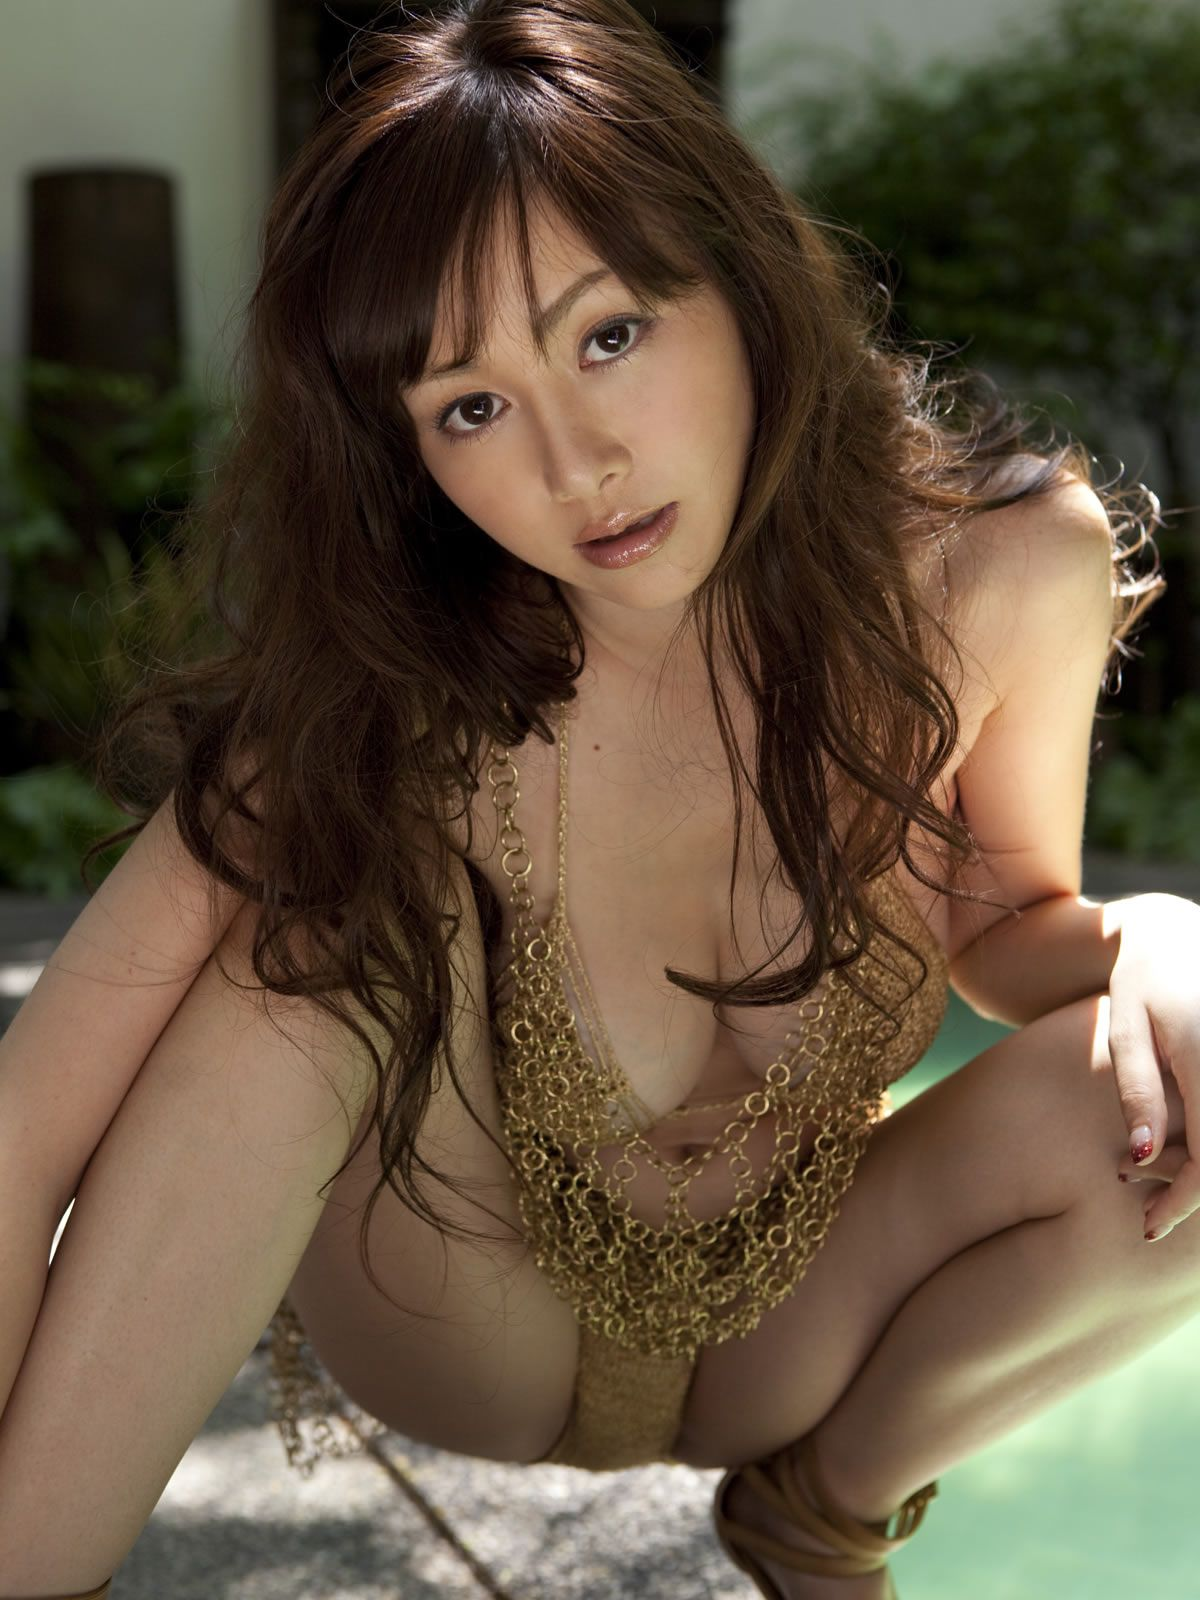 sabra] new cover girl 杉原杏璃『an-mirage』2010.11.25 | curves